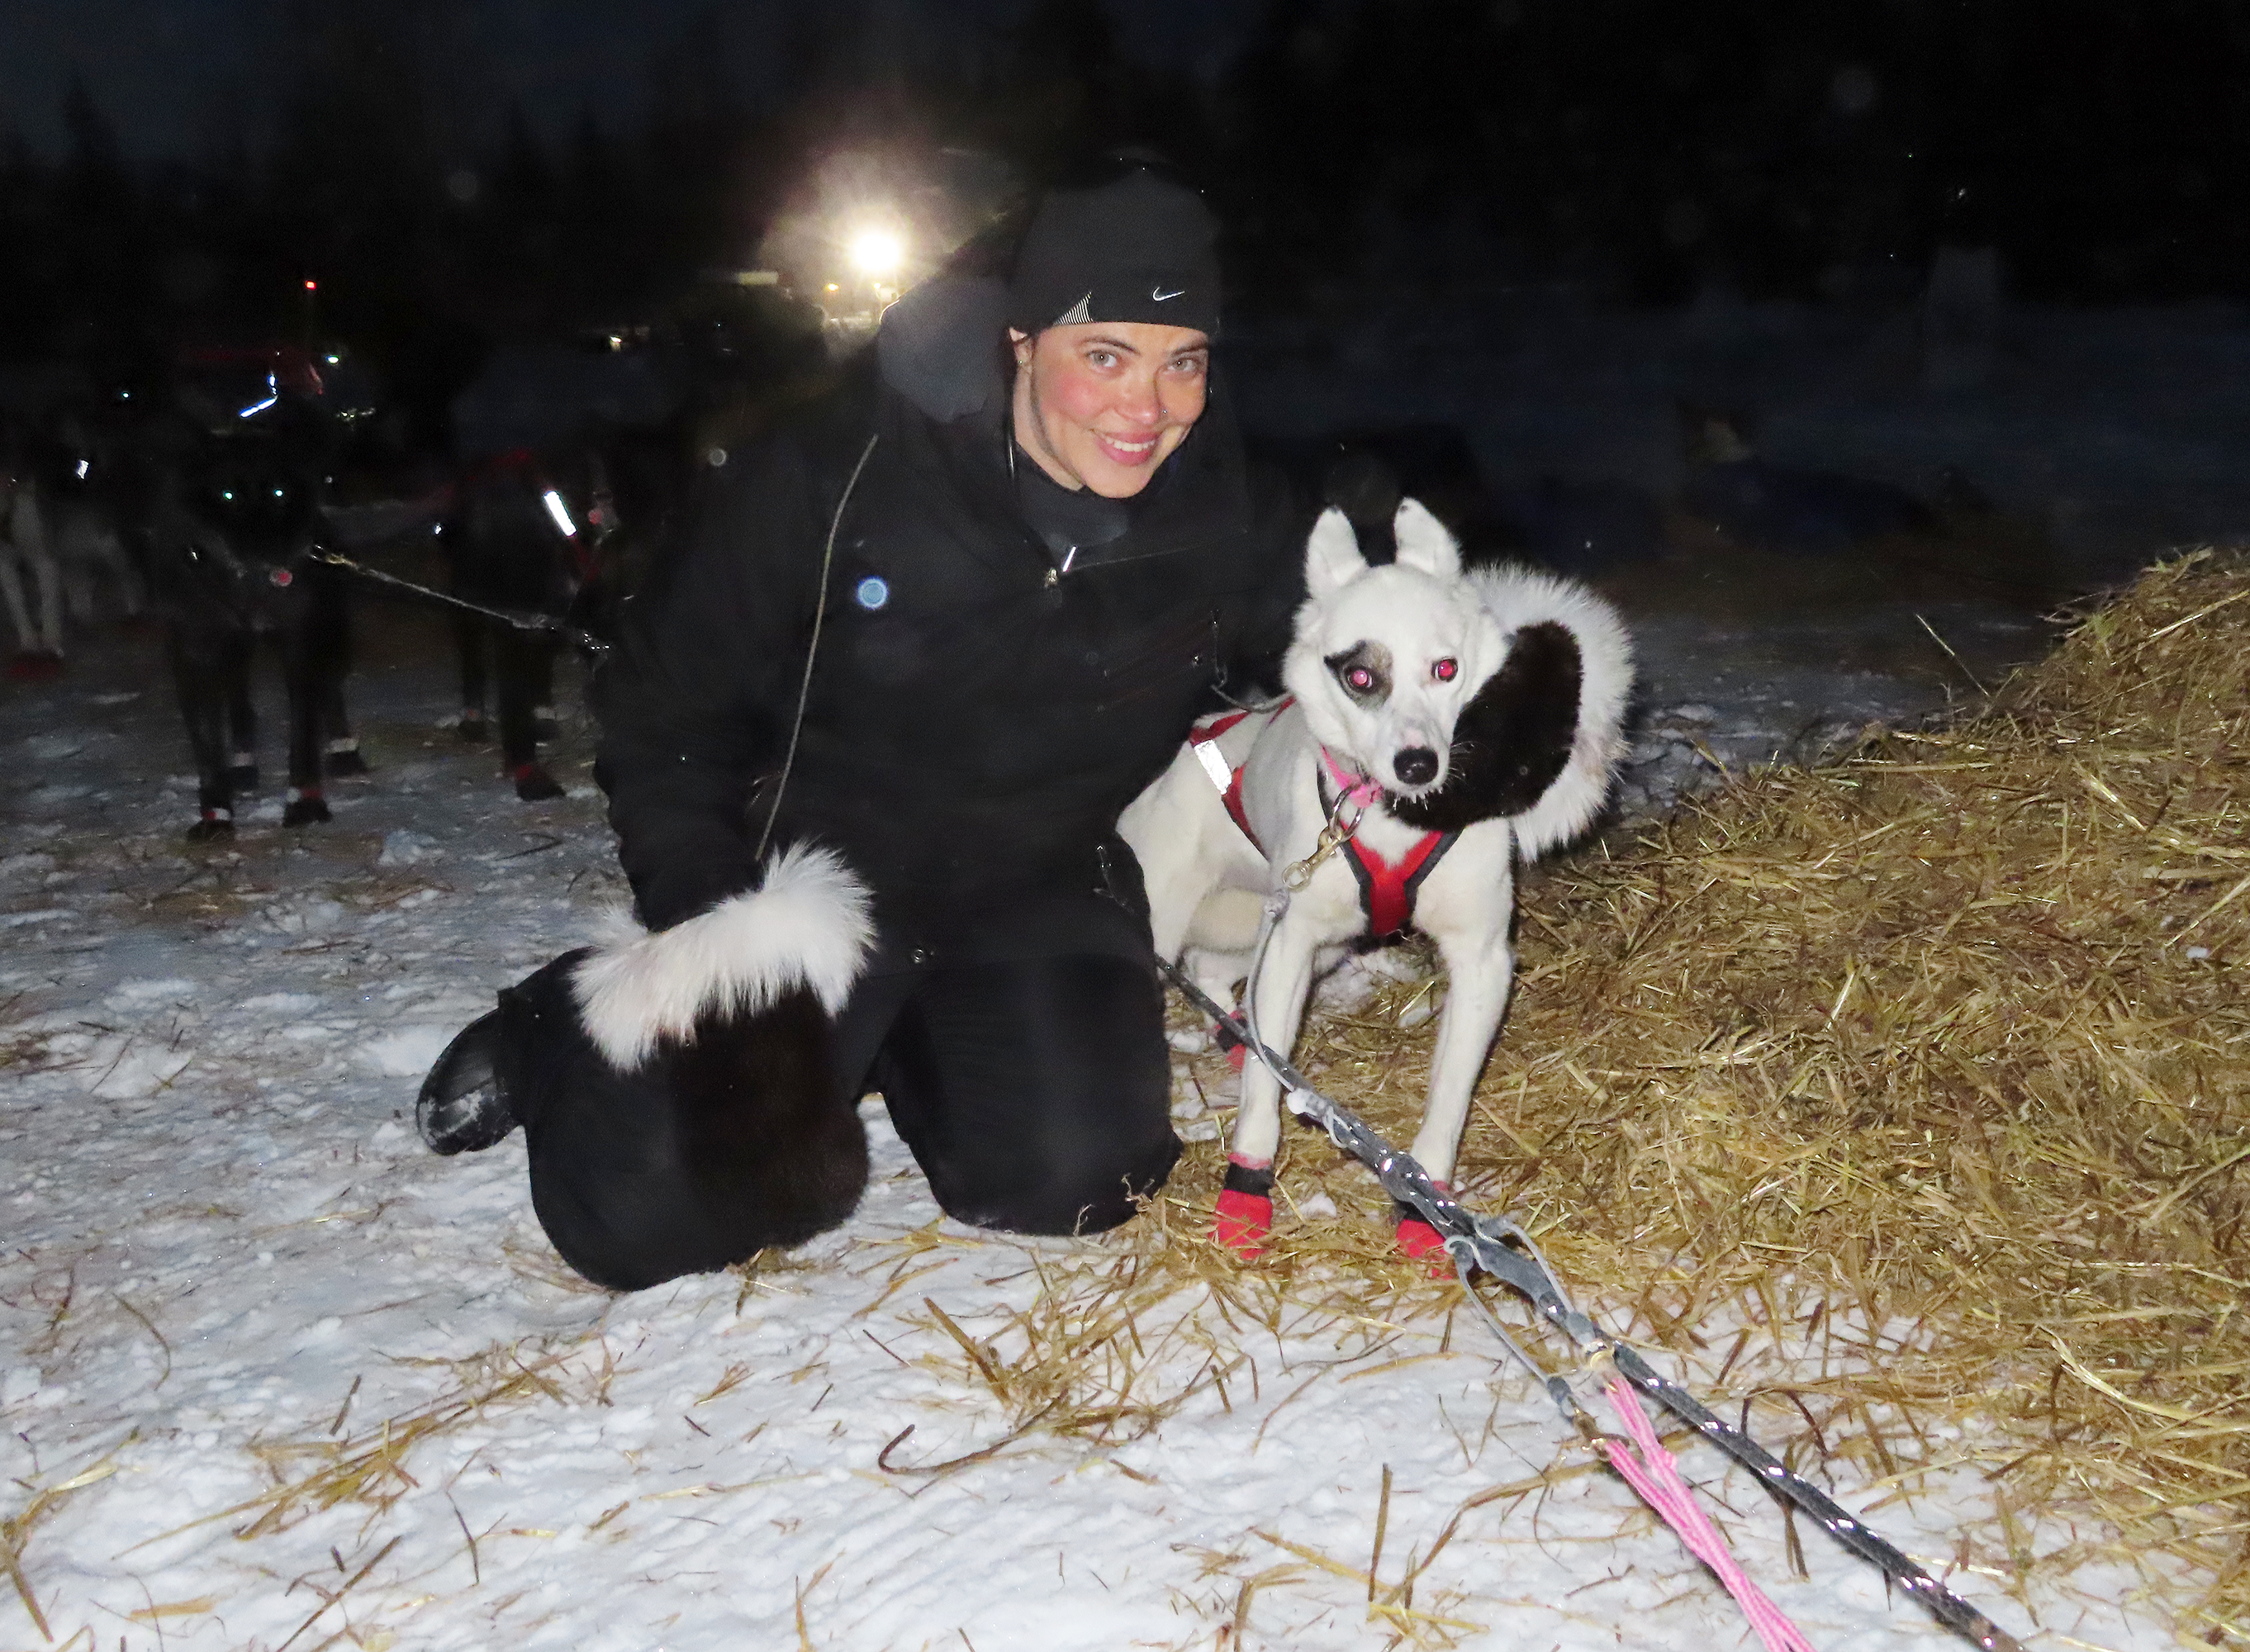 Vet and sled dog at Willow 300 race in Alaska